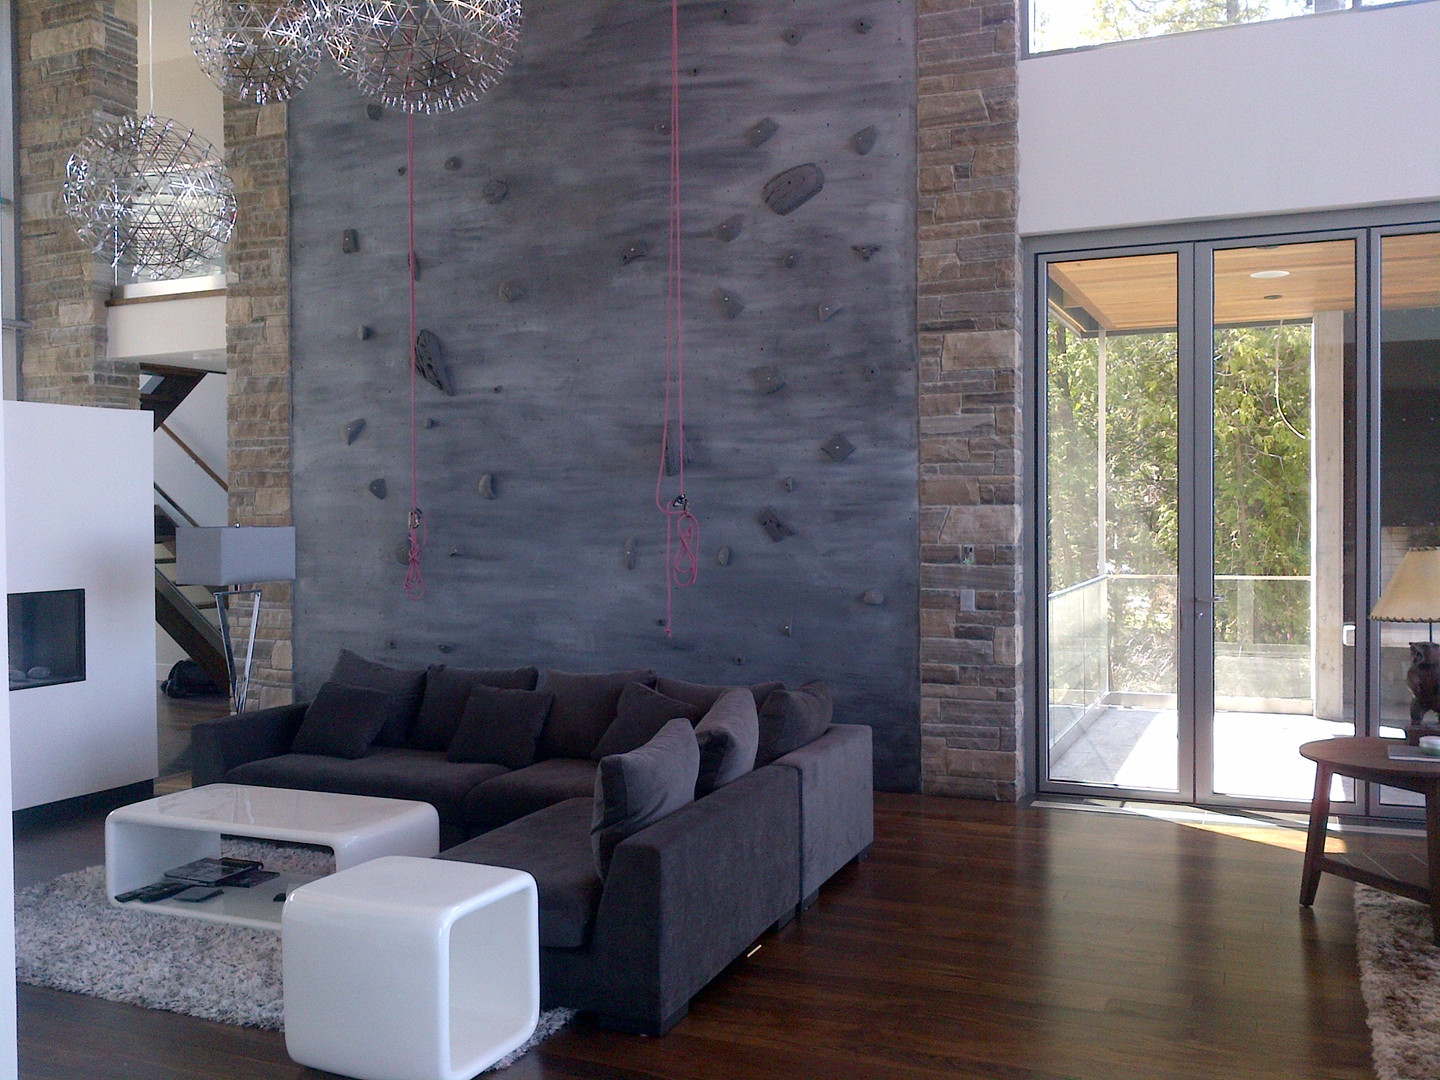 Residential Rock Climbing Wall